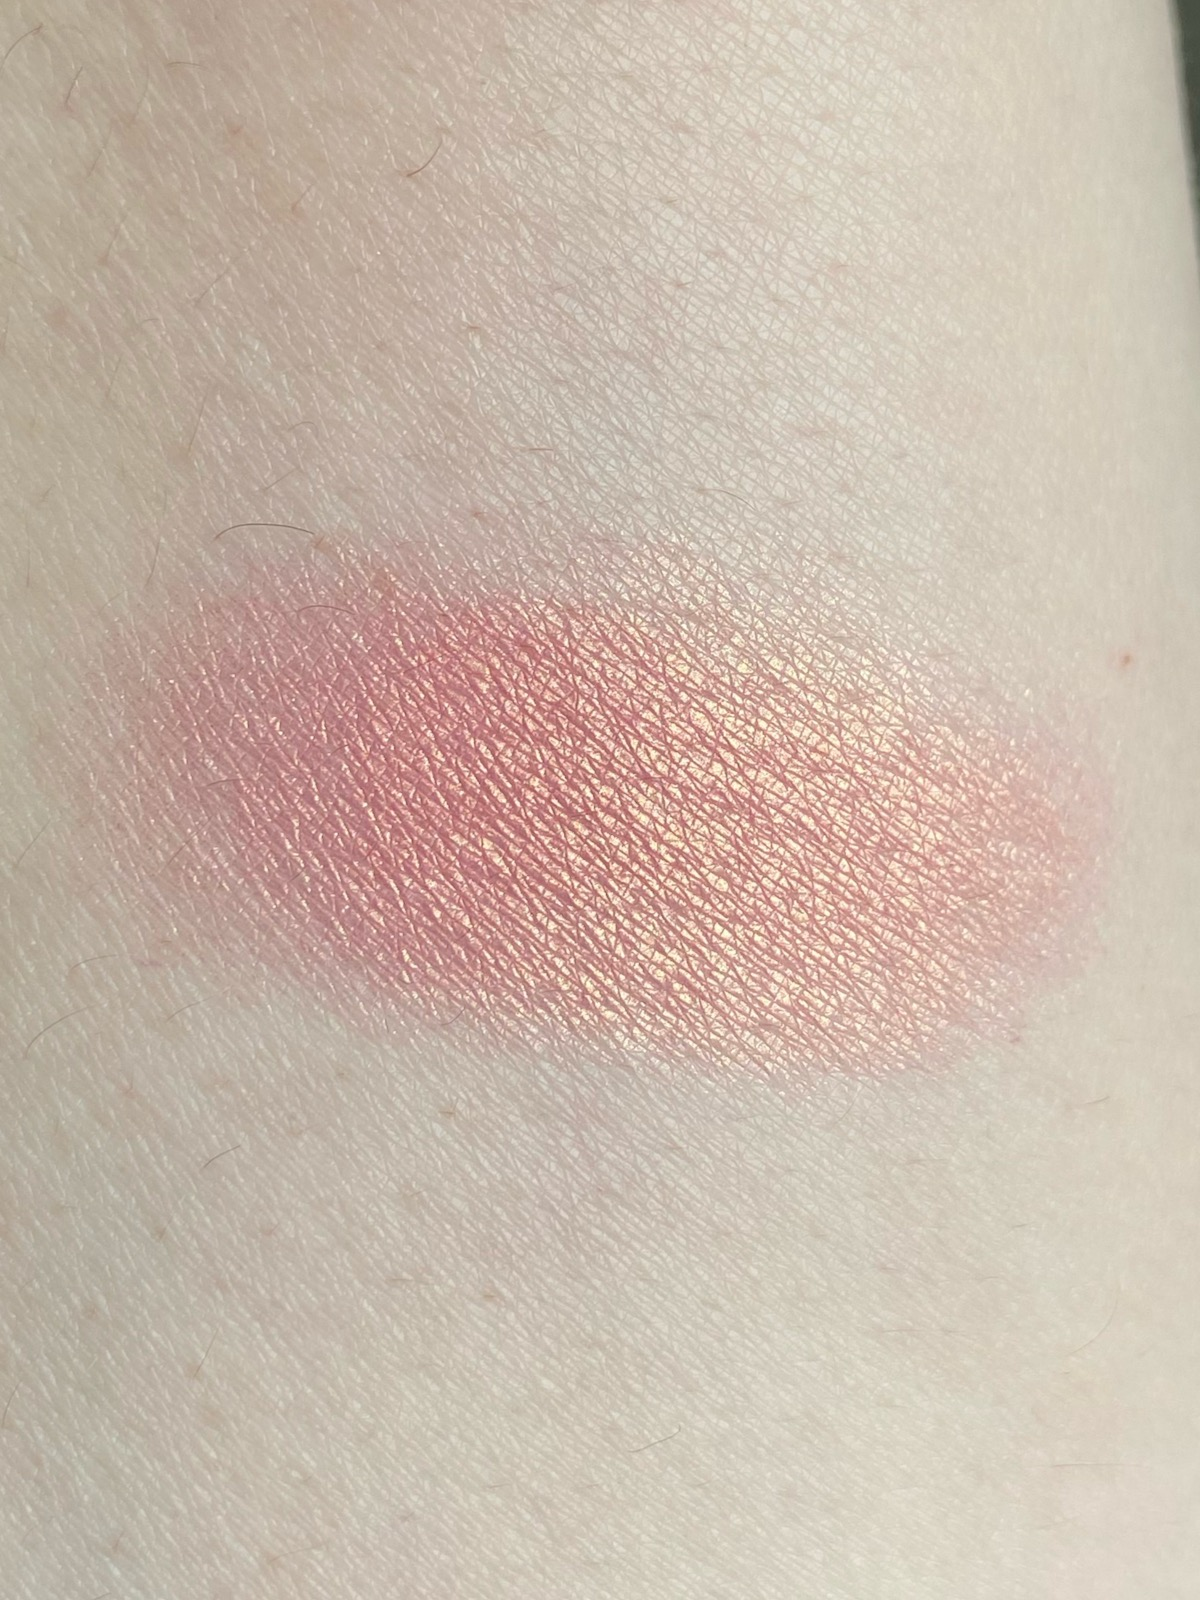 Catrice Cheek Lover Blush Swatch